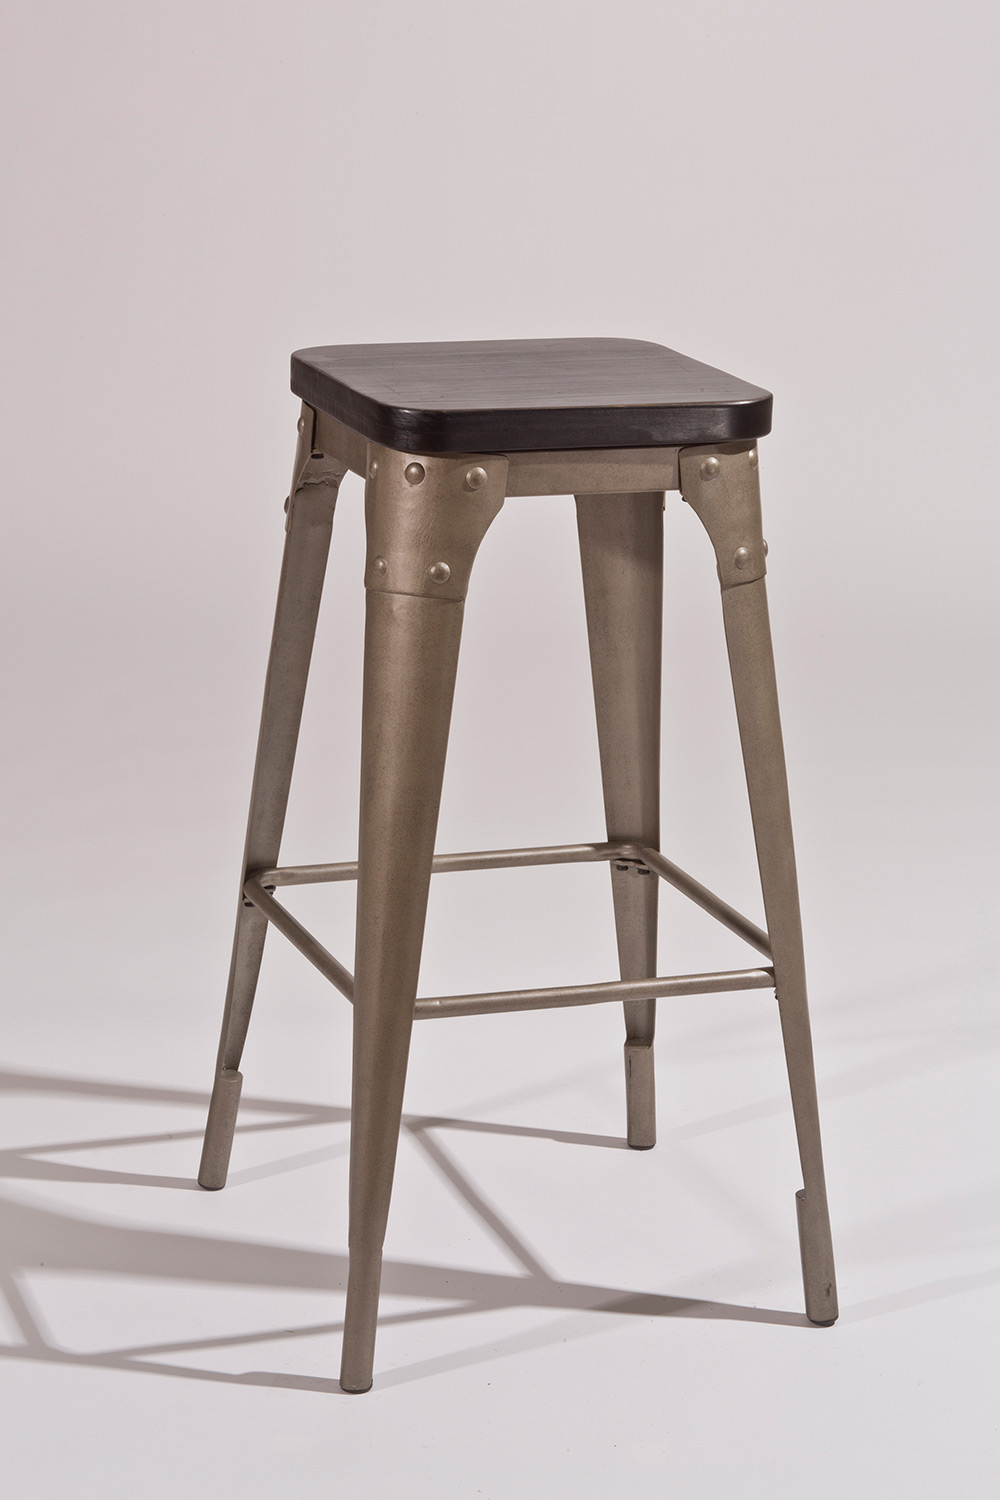 hillsdale morris backless bar stool dark gray black wood 5733 832. Black Bedroom Furniture Sets. Home Design Ideas